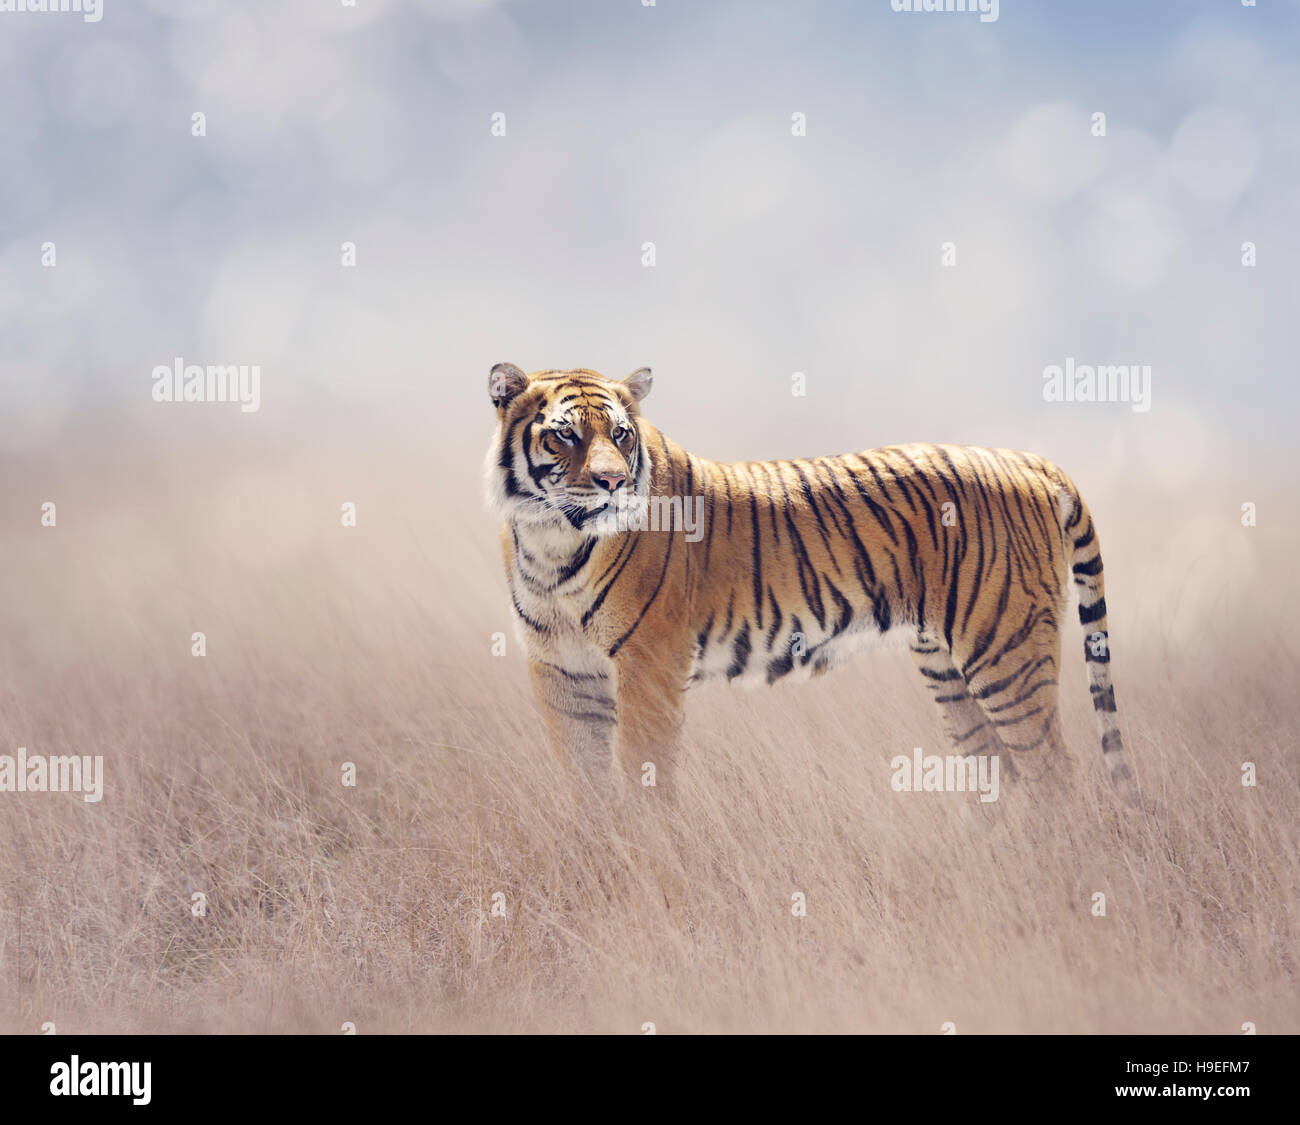 Bengal Tiger Walking in the Grassland - Stock Image